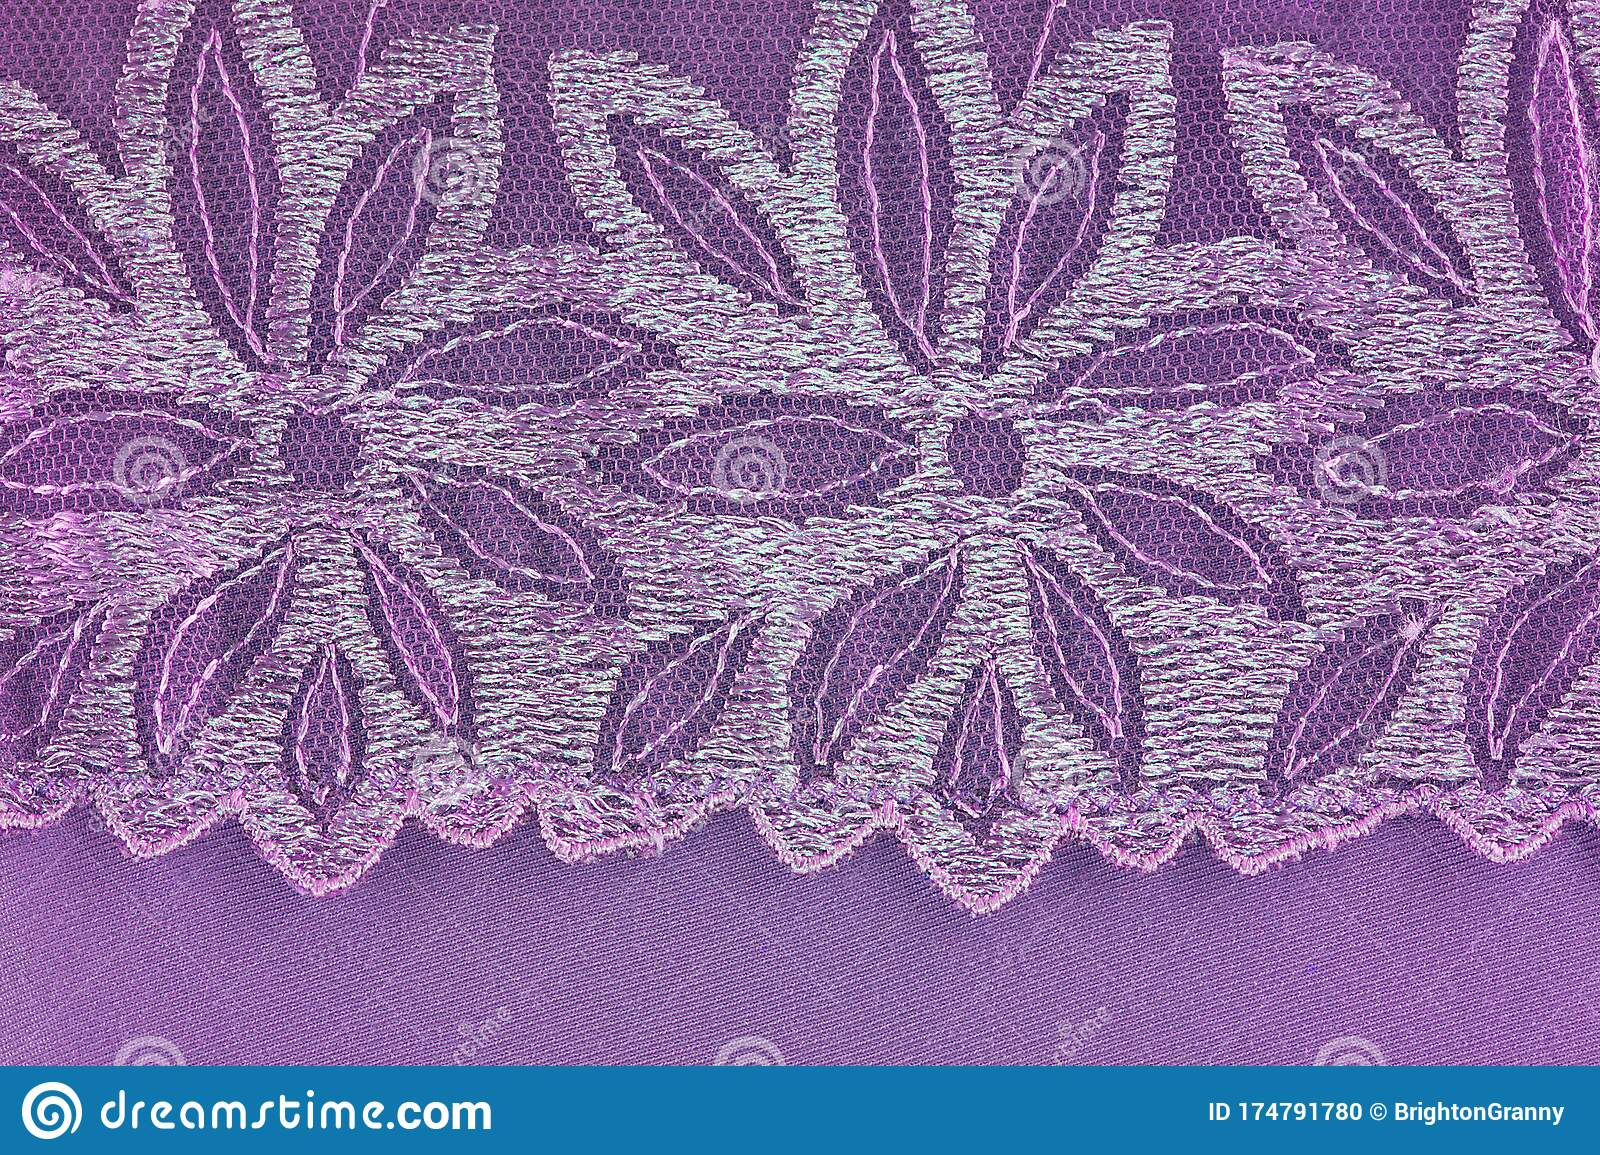 Flower Lace Stock Photo Image Of Crochet Banner Craftsmanship 174791780